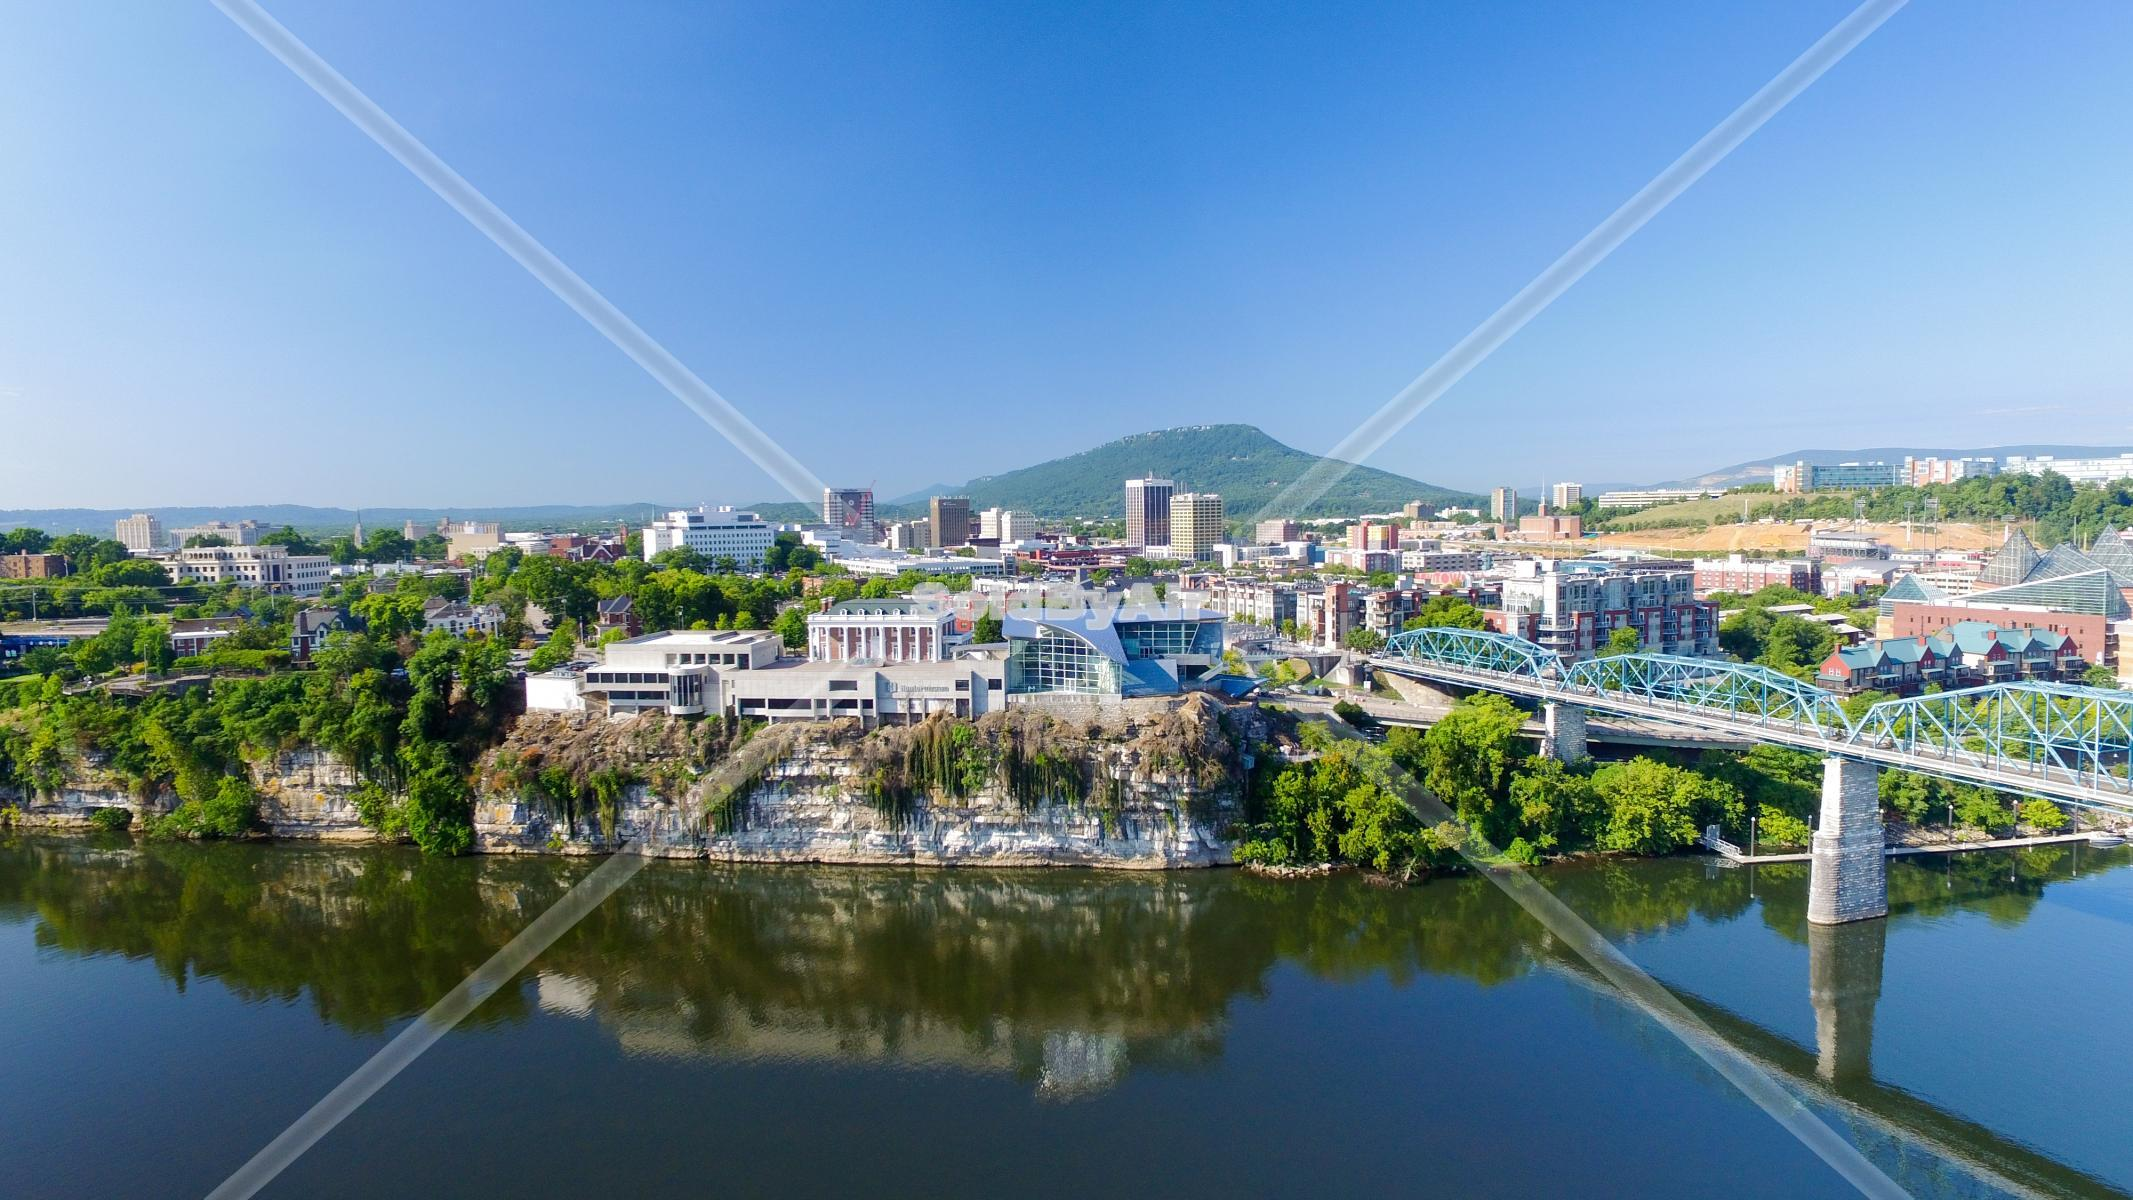 Drone Photo of View of downtown Chattanooga from Tennessee River. in Chattanooga Tennessee